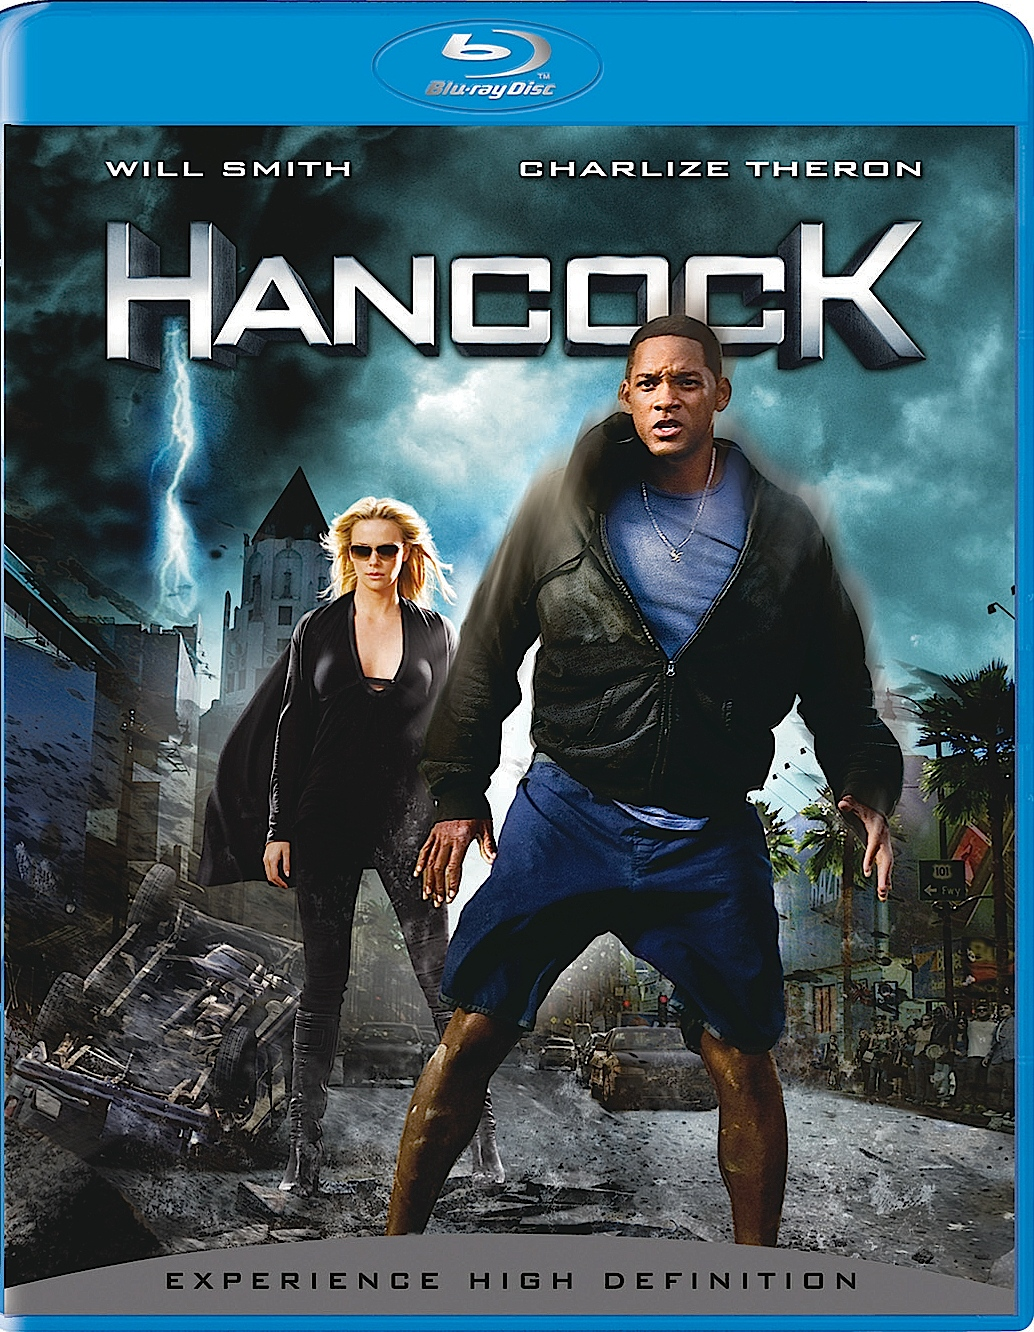 Hancock Tamil Dupped English Movie Online Watch 1 A To Z -5902